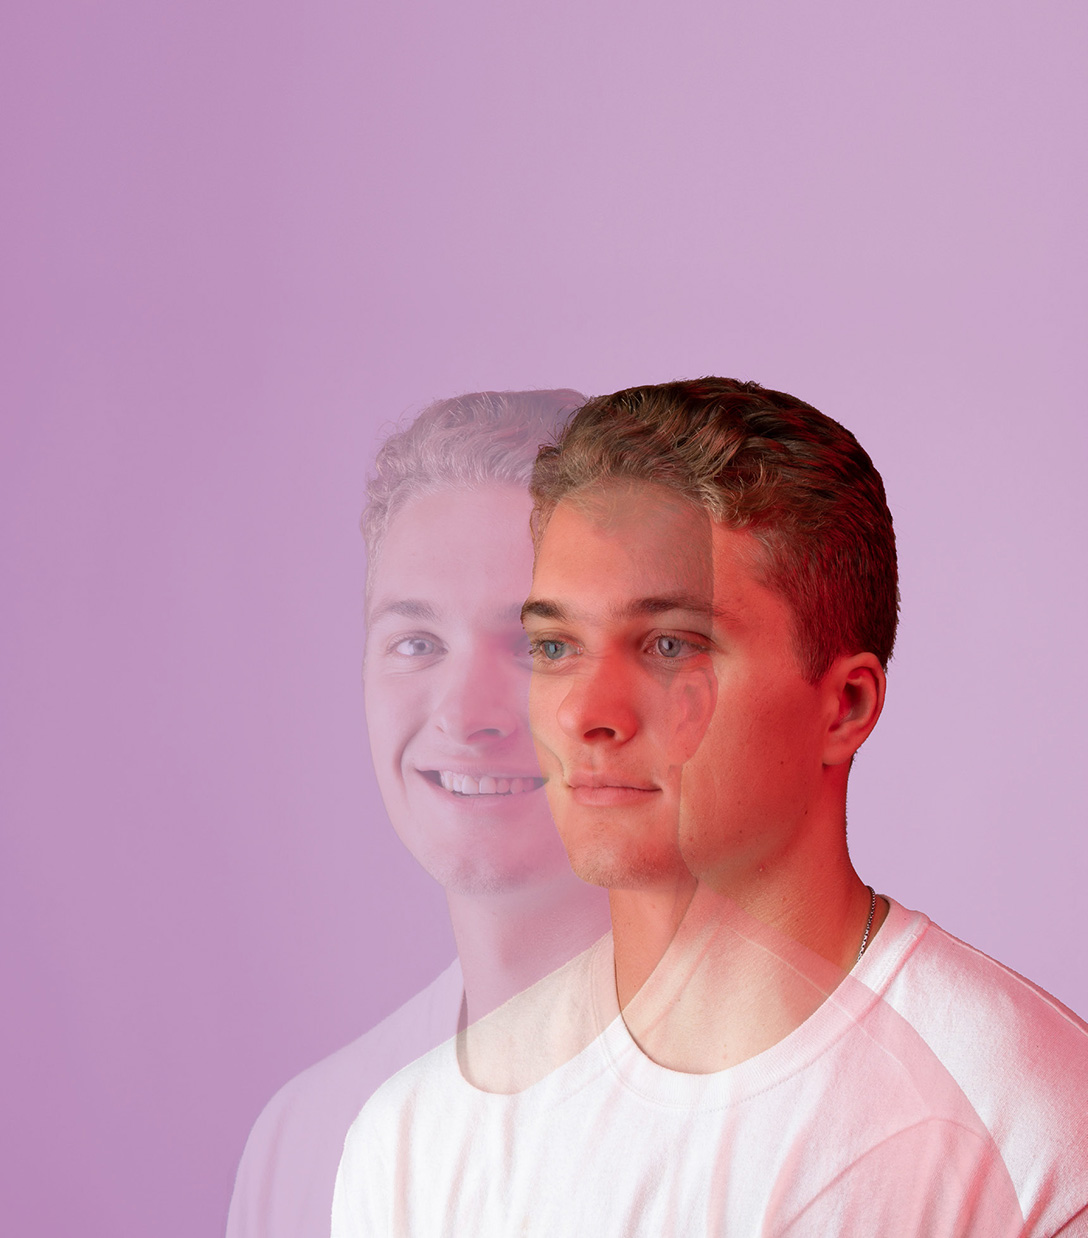 Mitchell Chaffee in double exposure